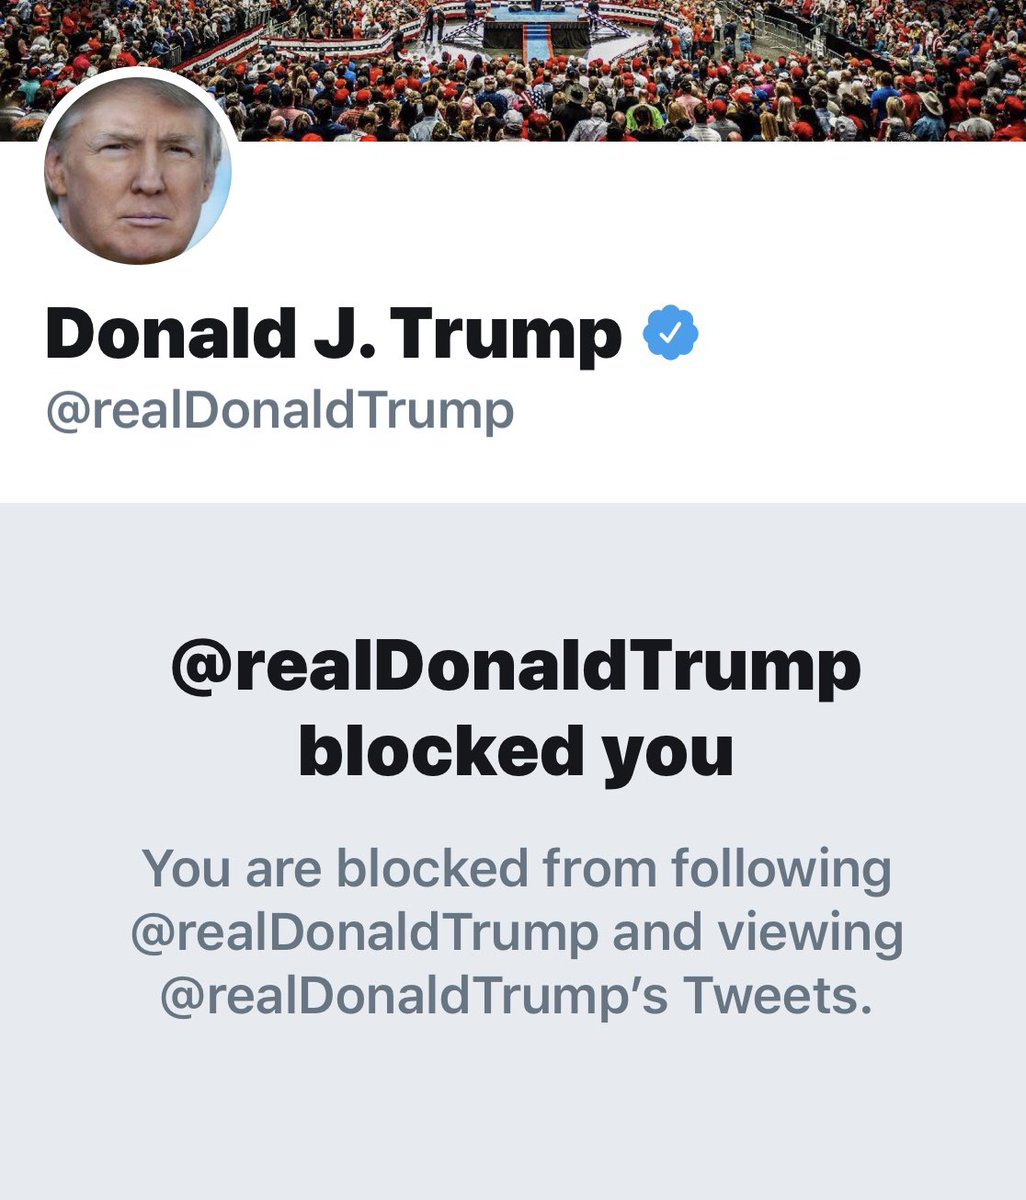 (A) @realDonaldTrump whines that Twitter censors him. (B) @realDonaldTrump blocks me from seeing his tweets. Guess which one is a genuine constitutional violation?